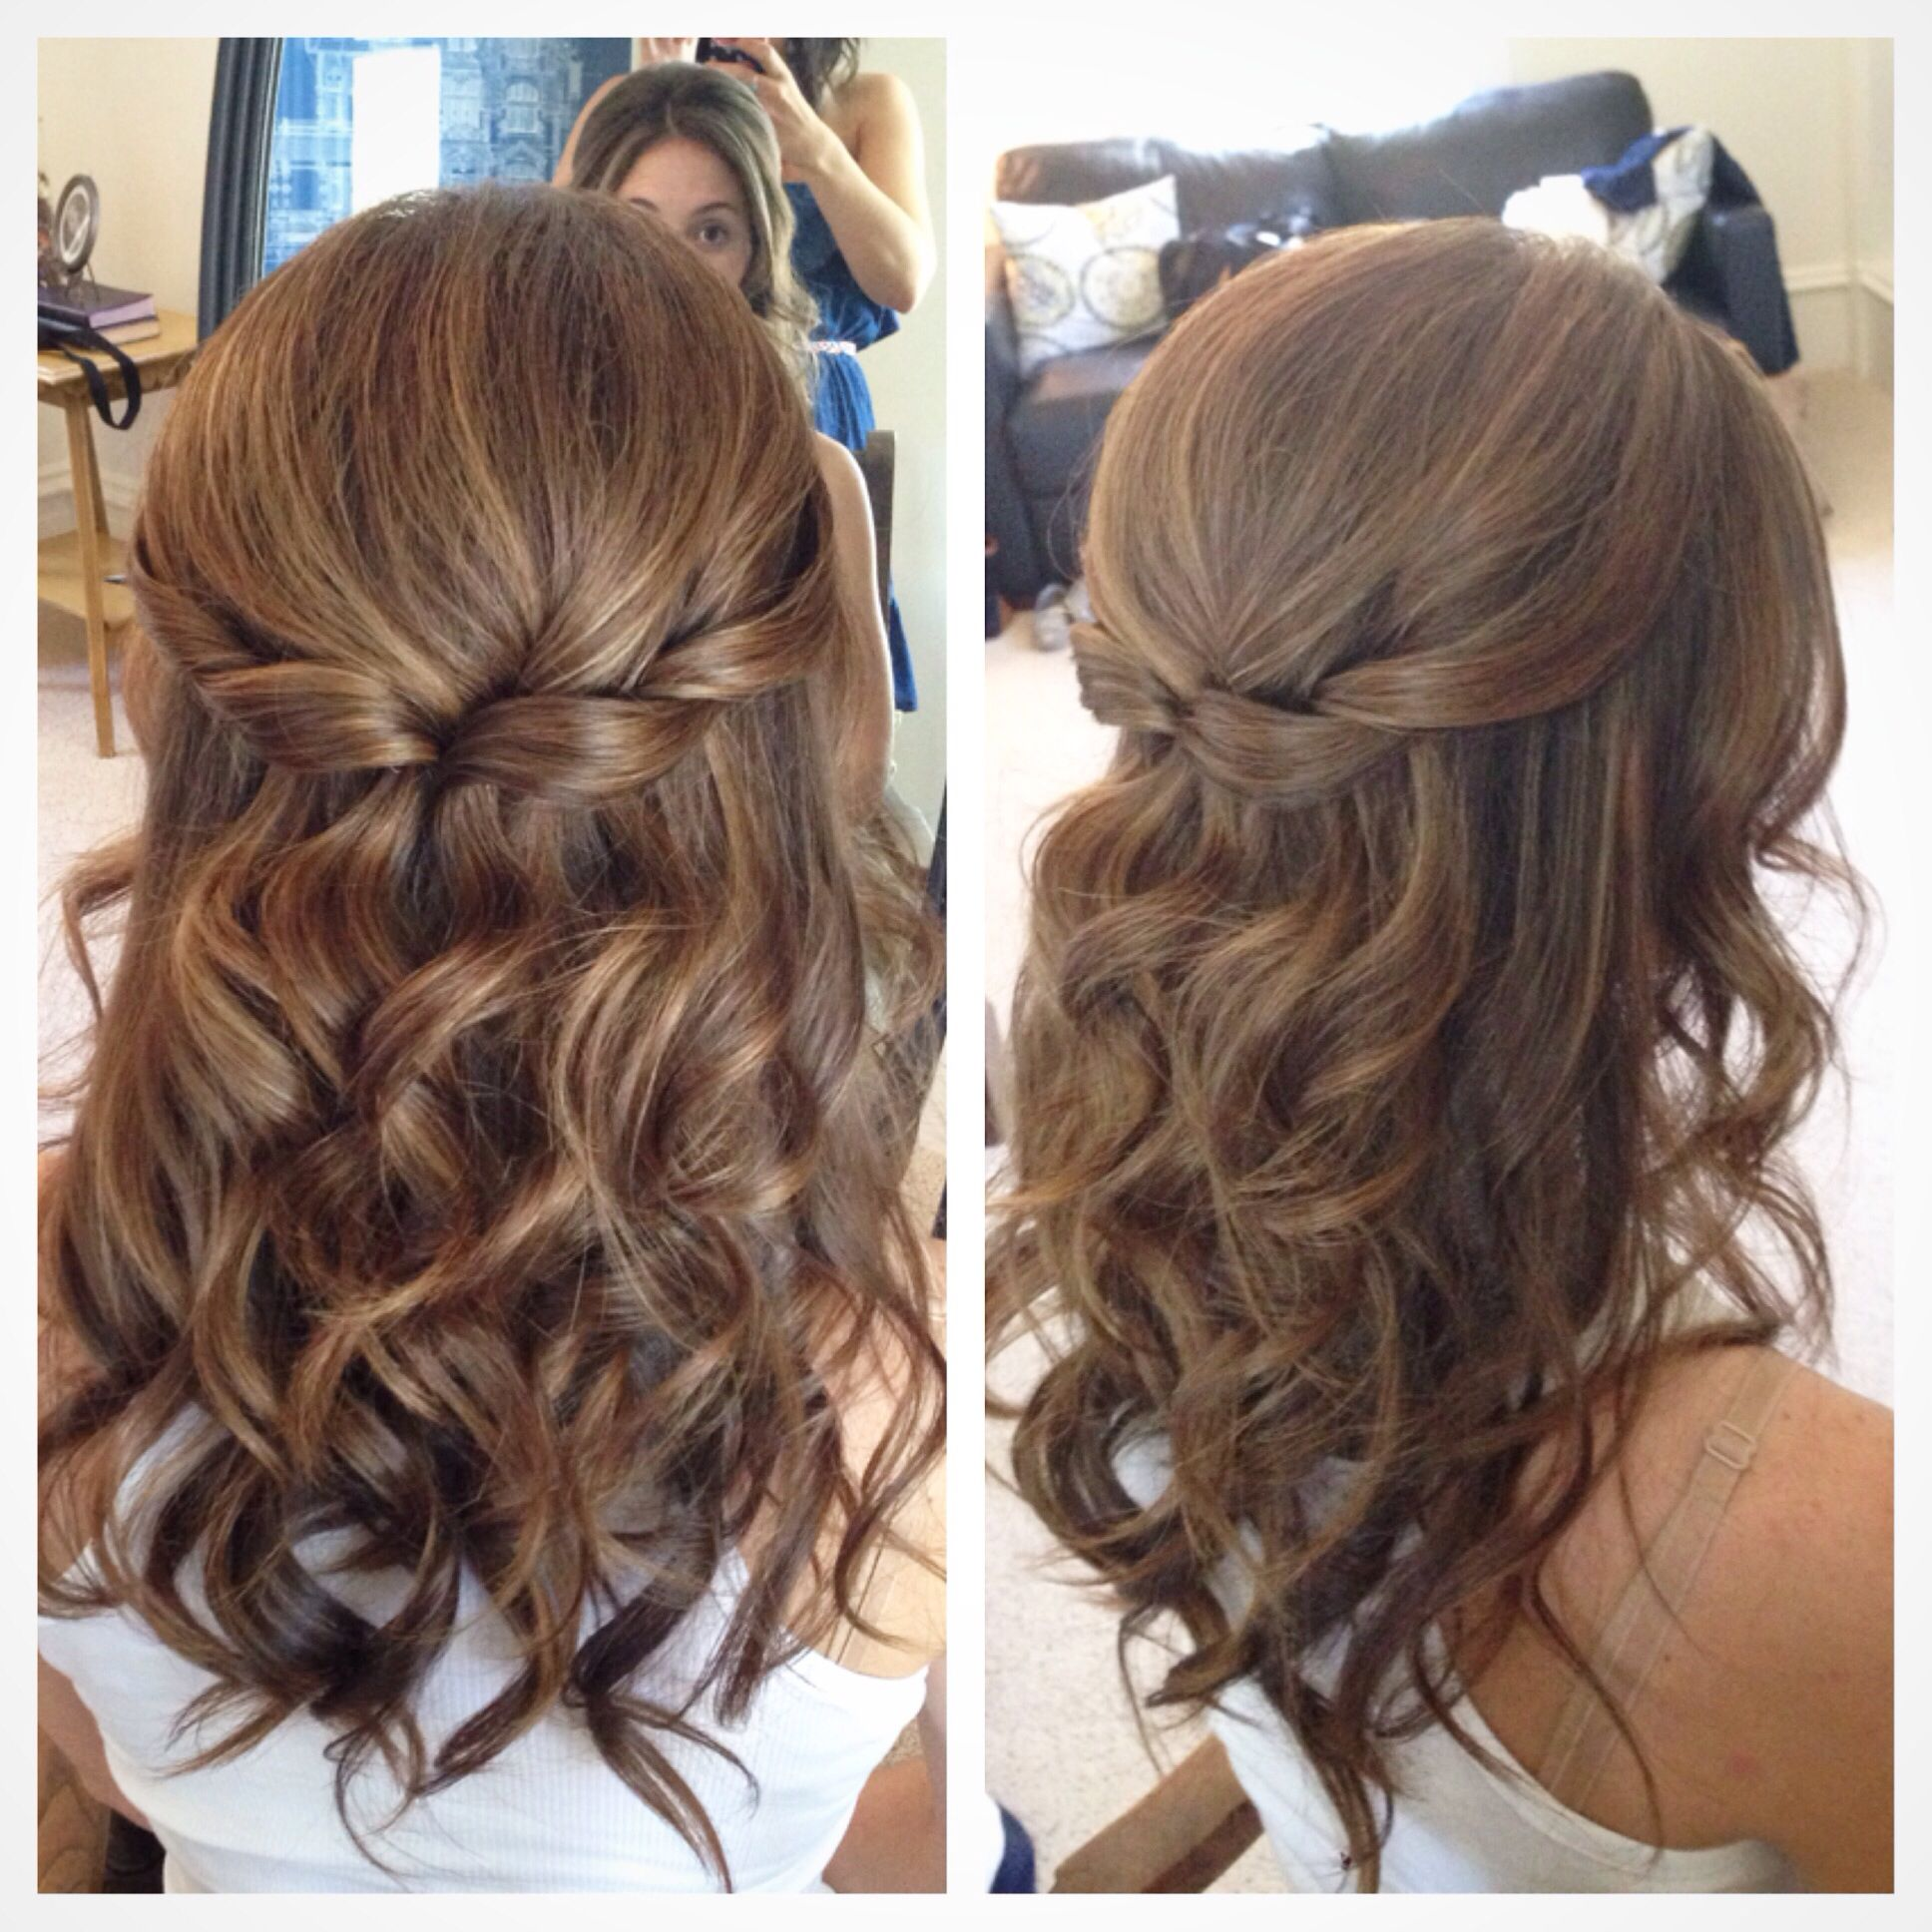 wallpaper diy wedding hair half up for smartphone full hd pics down pretty but with softer